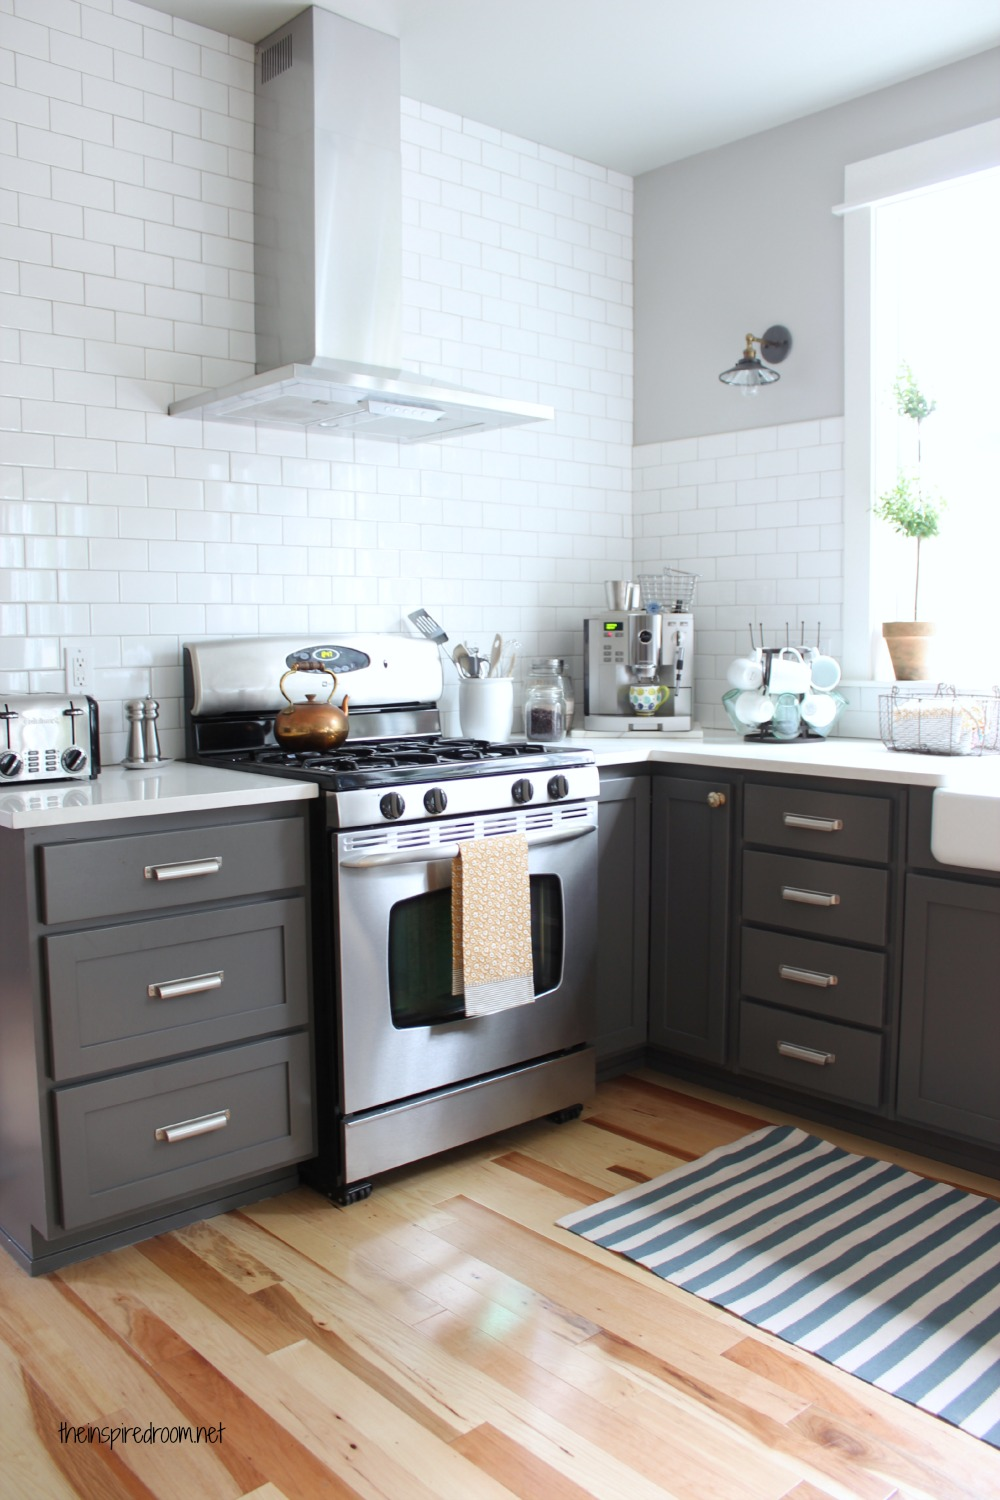 Bar pulls for kitchen cabinets Photo - 2